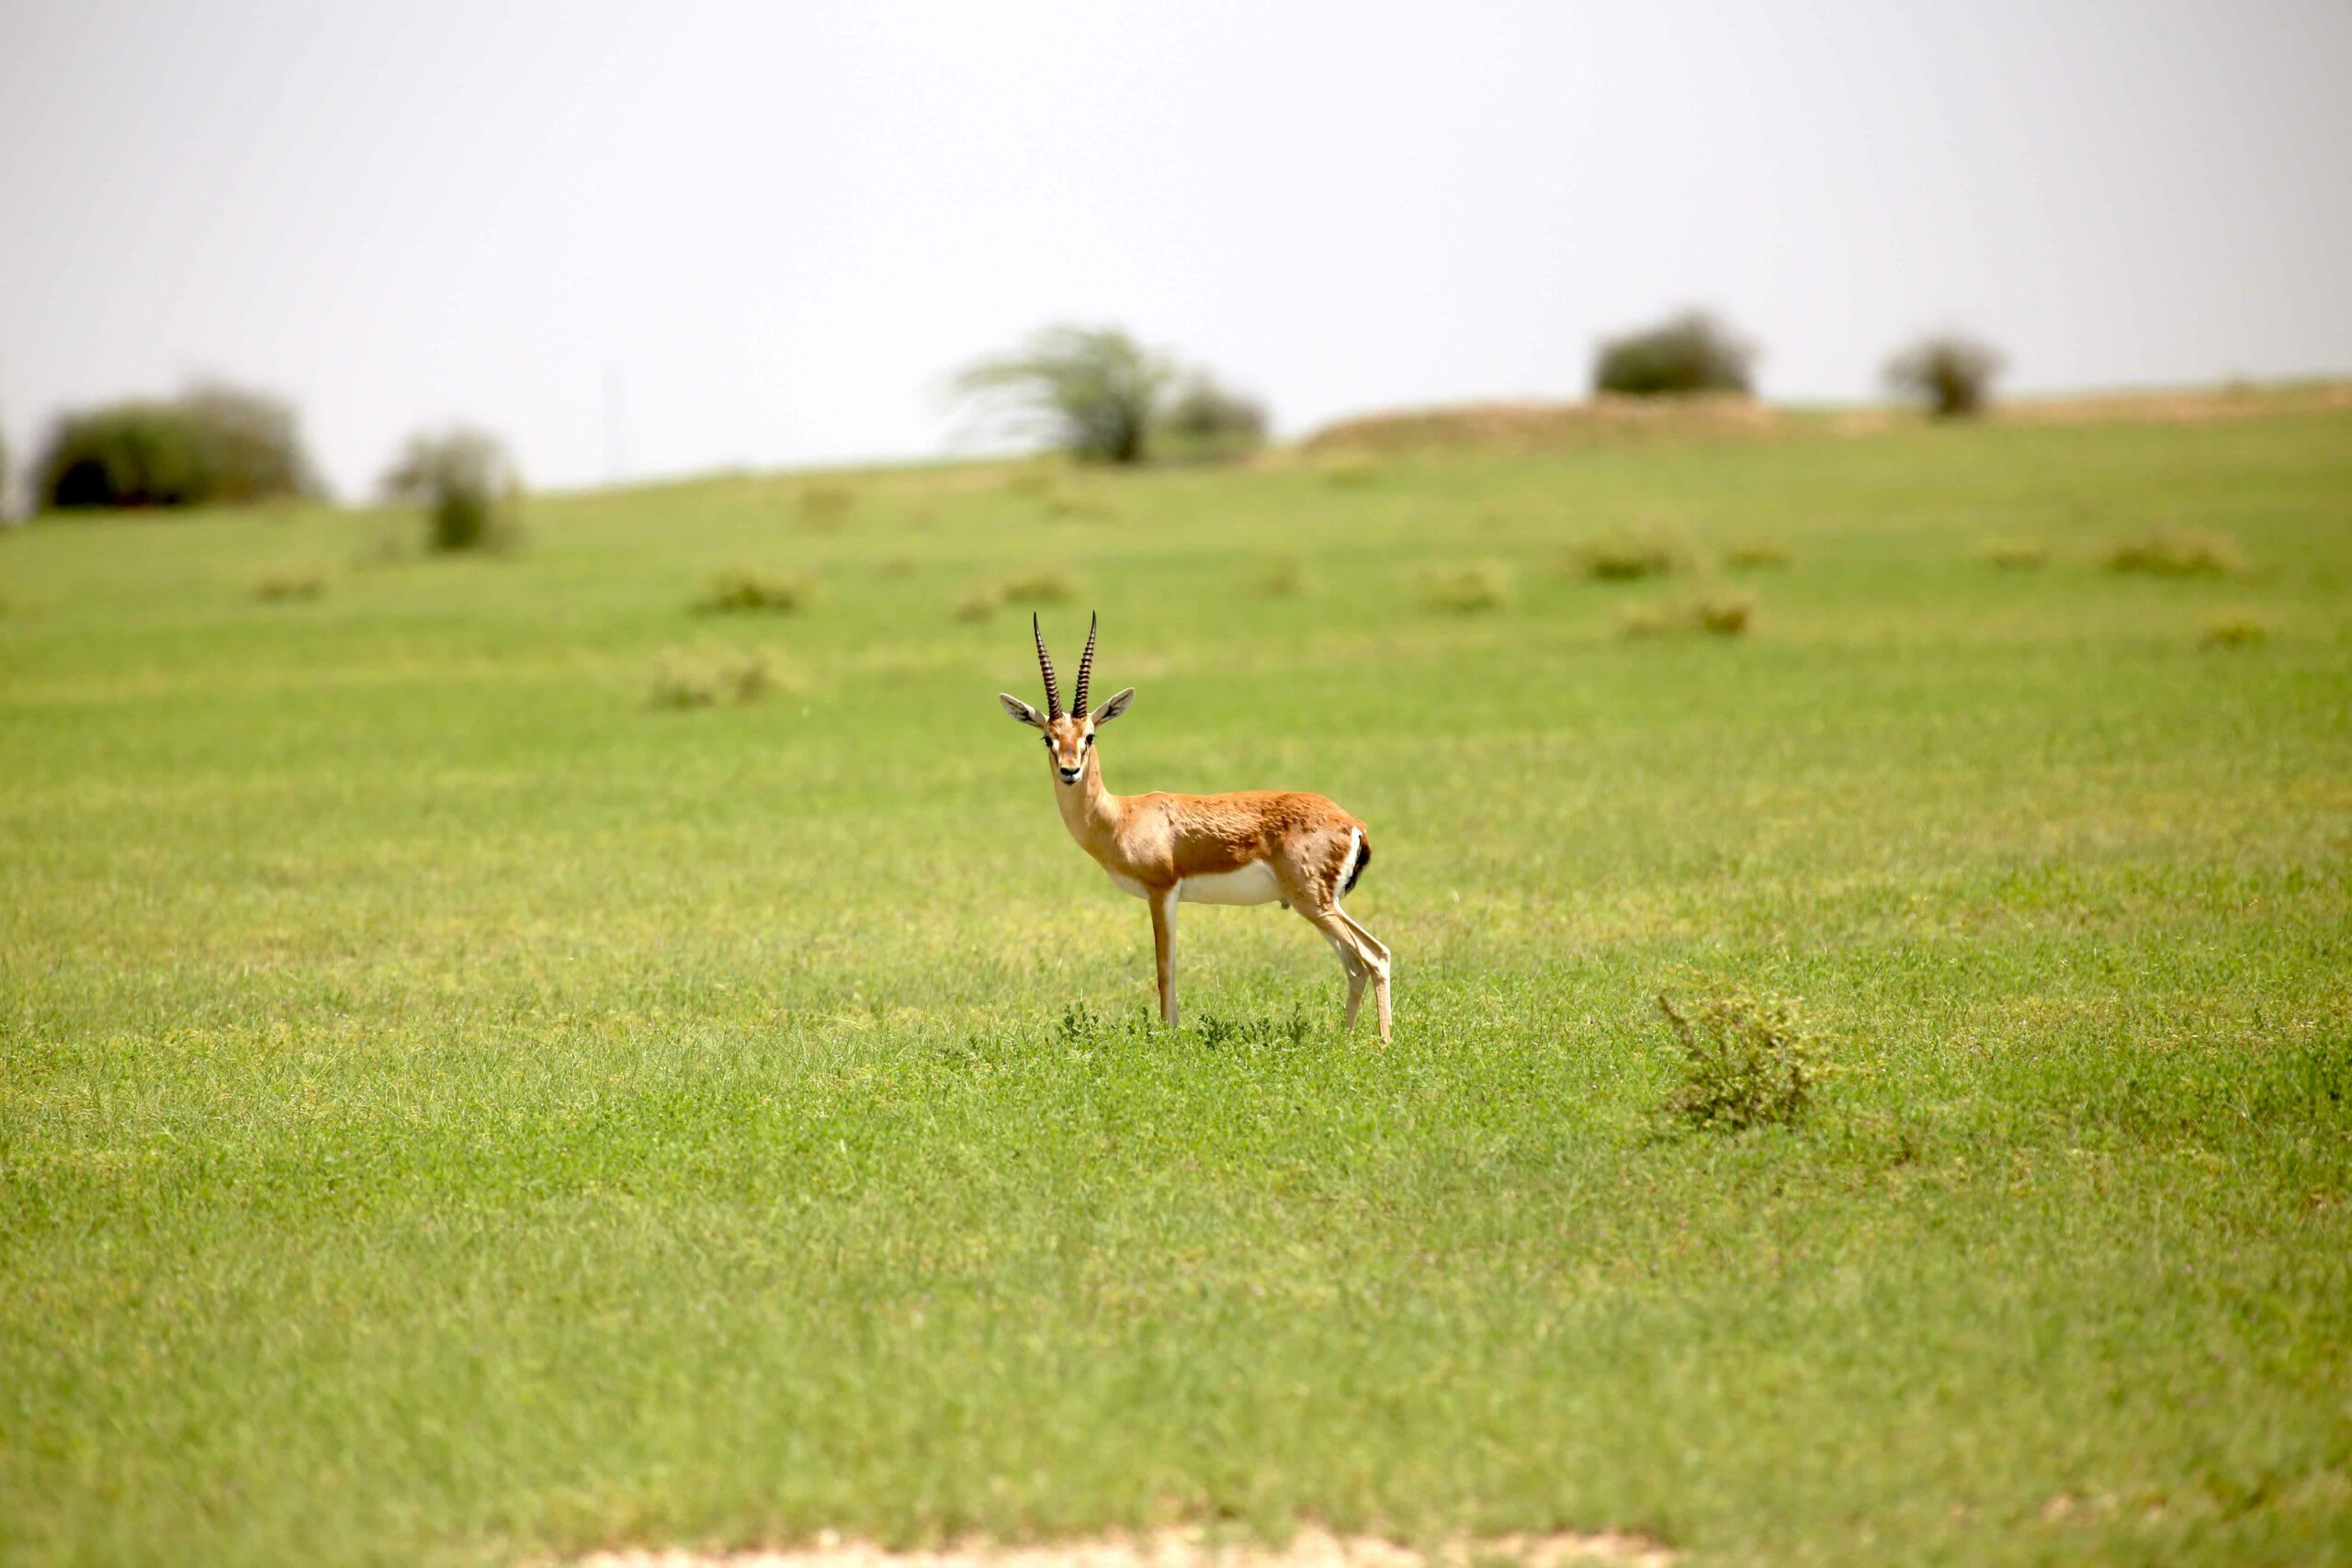 Wedged between the Thar Desert and the Aravallis, the district of Jodhpur's habitat is largely flat with thorny scrub forests. This mostly brown landscape comes alive between June and September when the region receives some rain. Blackbuck and chinkara (pictured here) live here year-round. Photo: Surya Ramachandran